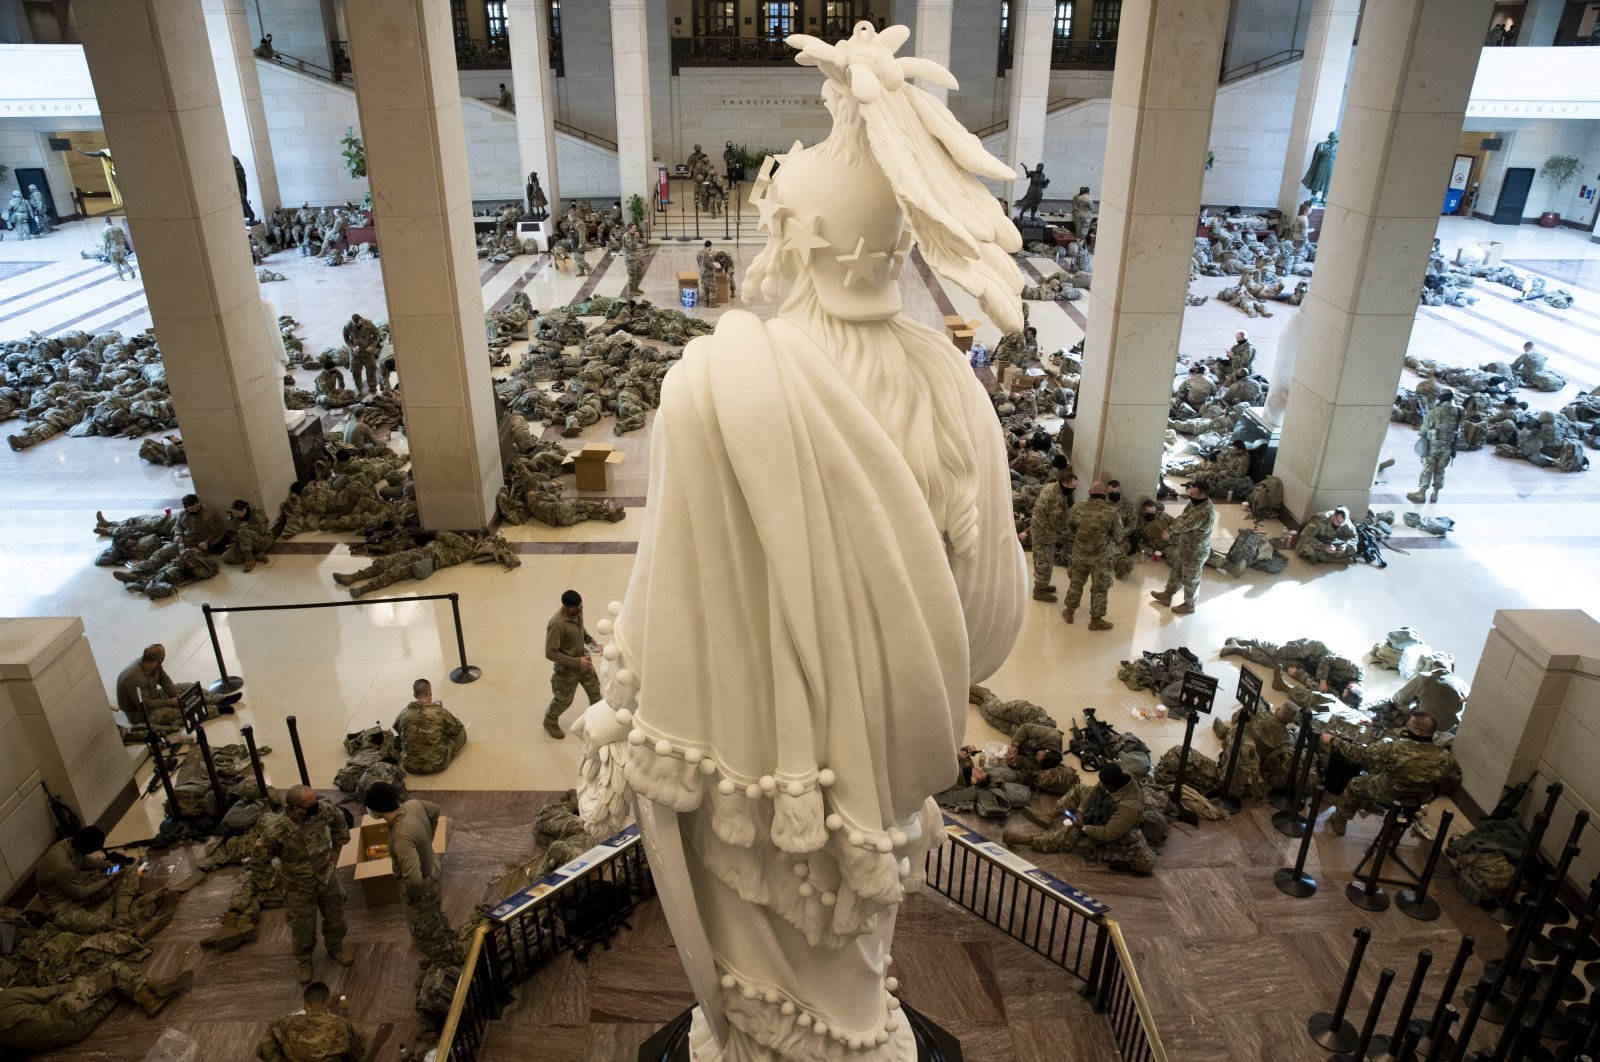 Hundreds of US National Guard troops rest in the Capitol Visitors Center, with the Statue of Freedom seen at center, on Capitol Hill in Washington, DC, USA, 13 January 2021. (EPA Photo)